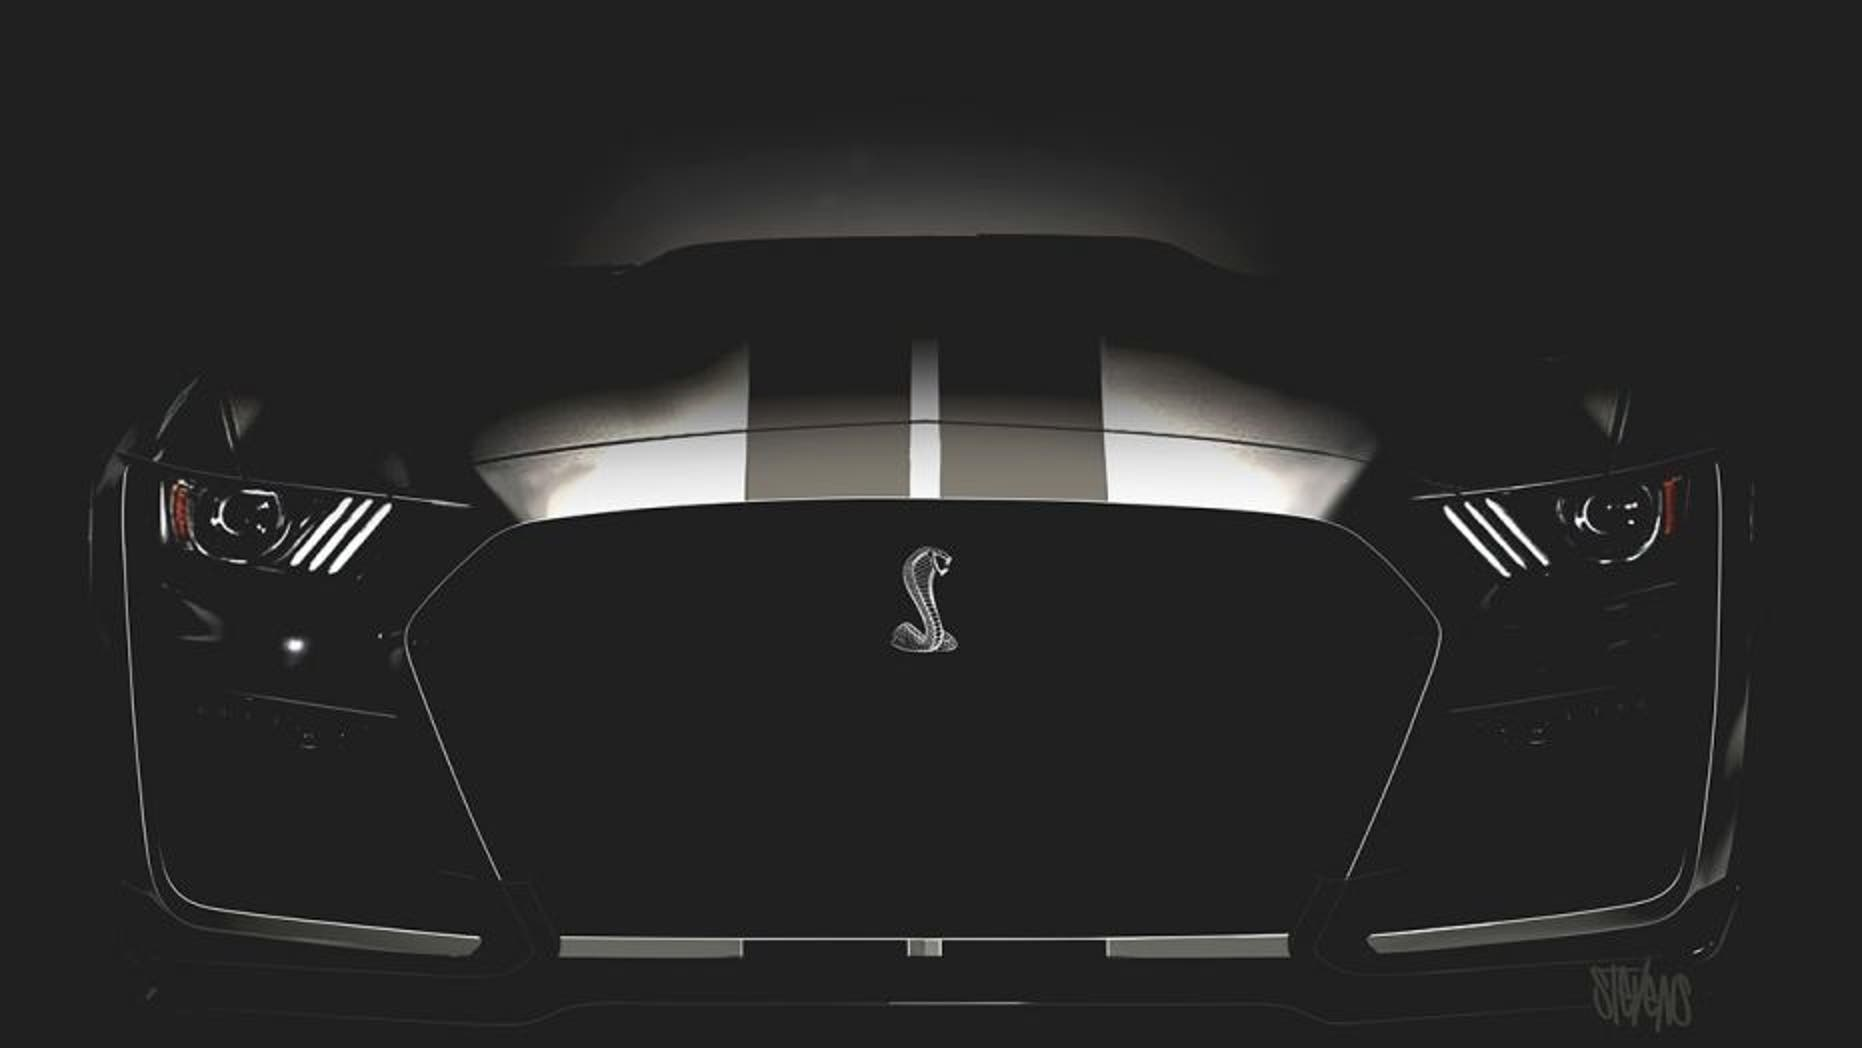 The 2019 Mustang Shelby Gt500 Will Be Most Ful Version Of Cur Generation